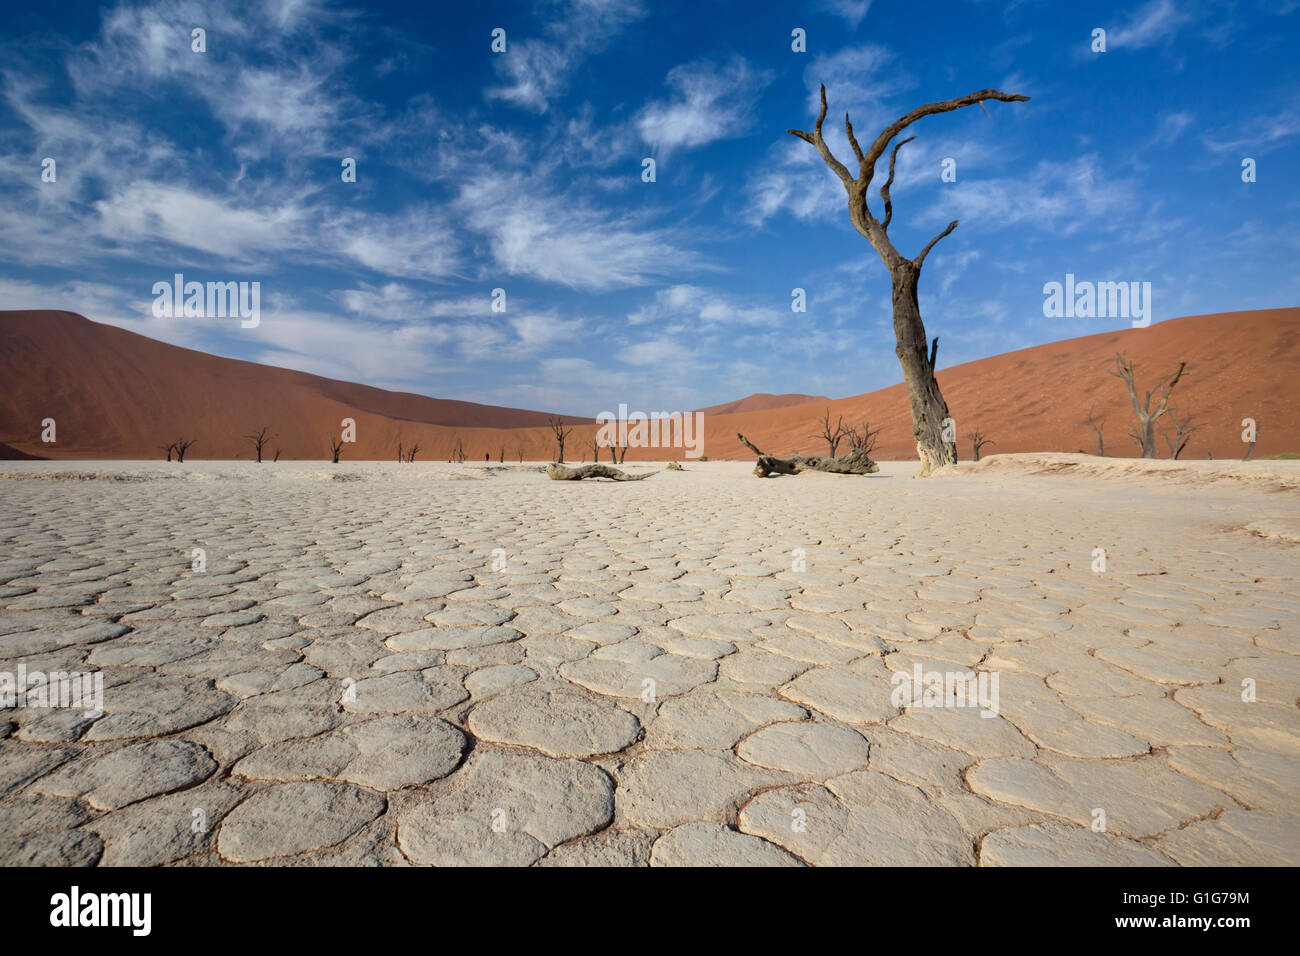 View of Dead valley in Namib desert, Sossusvlei, Namibia - Stock Image